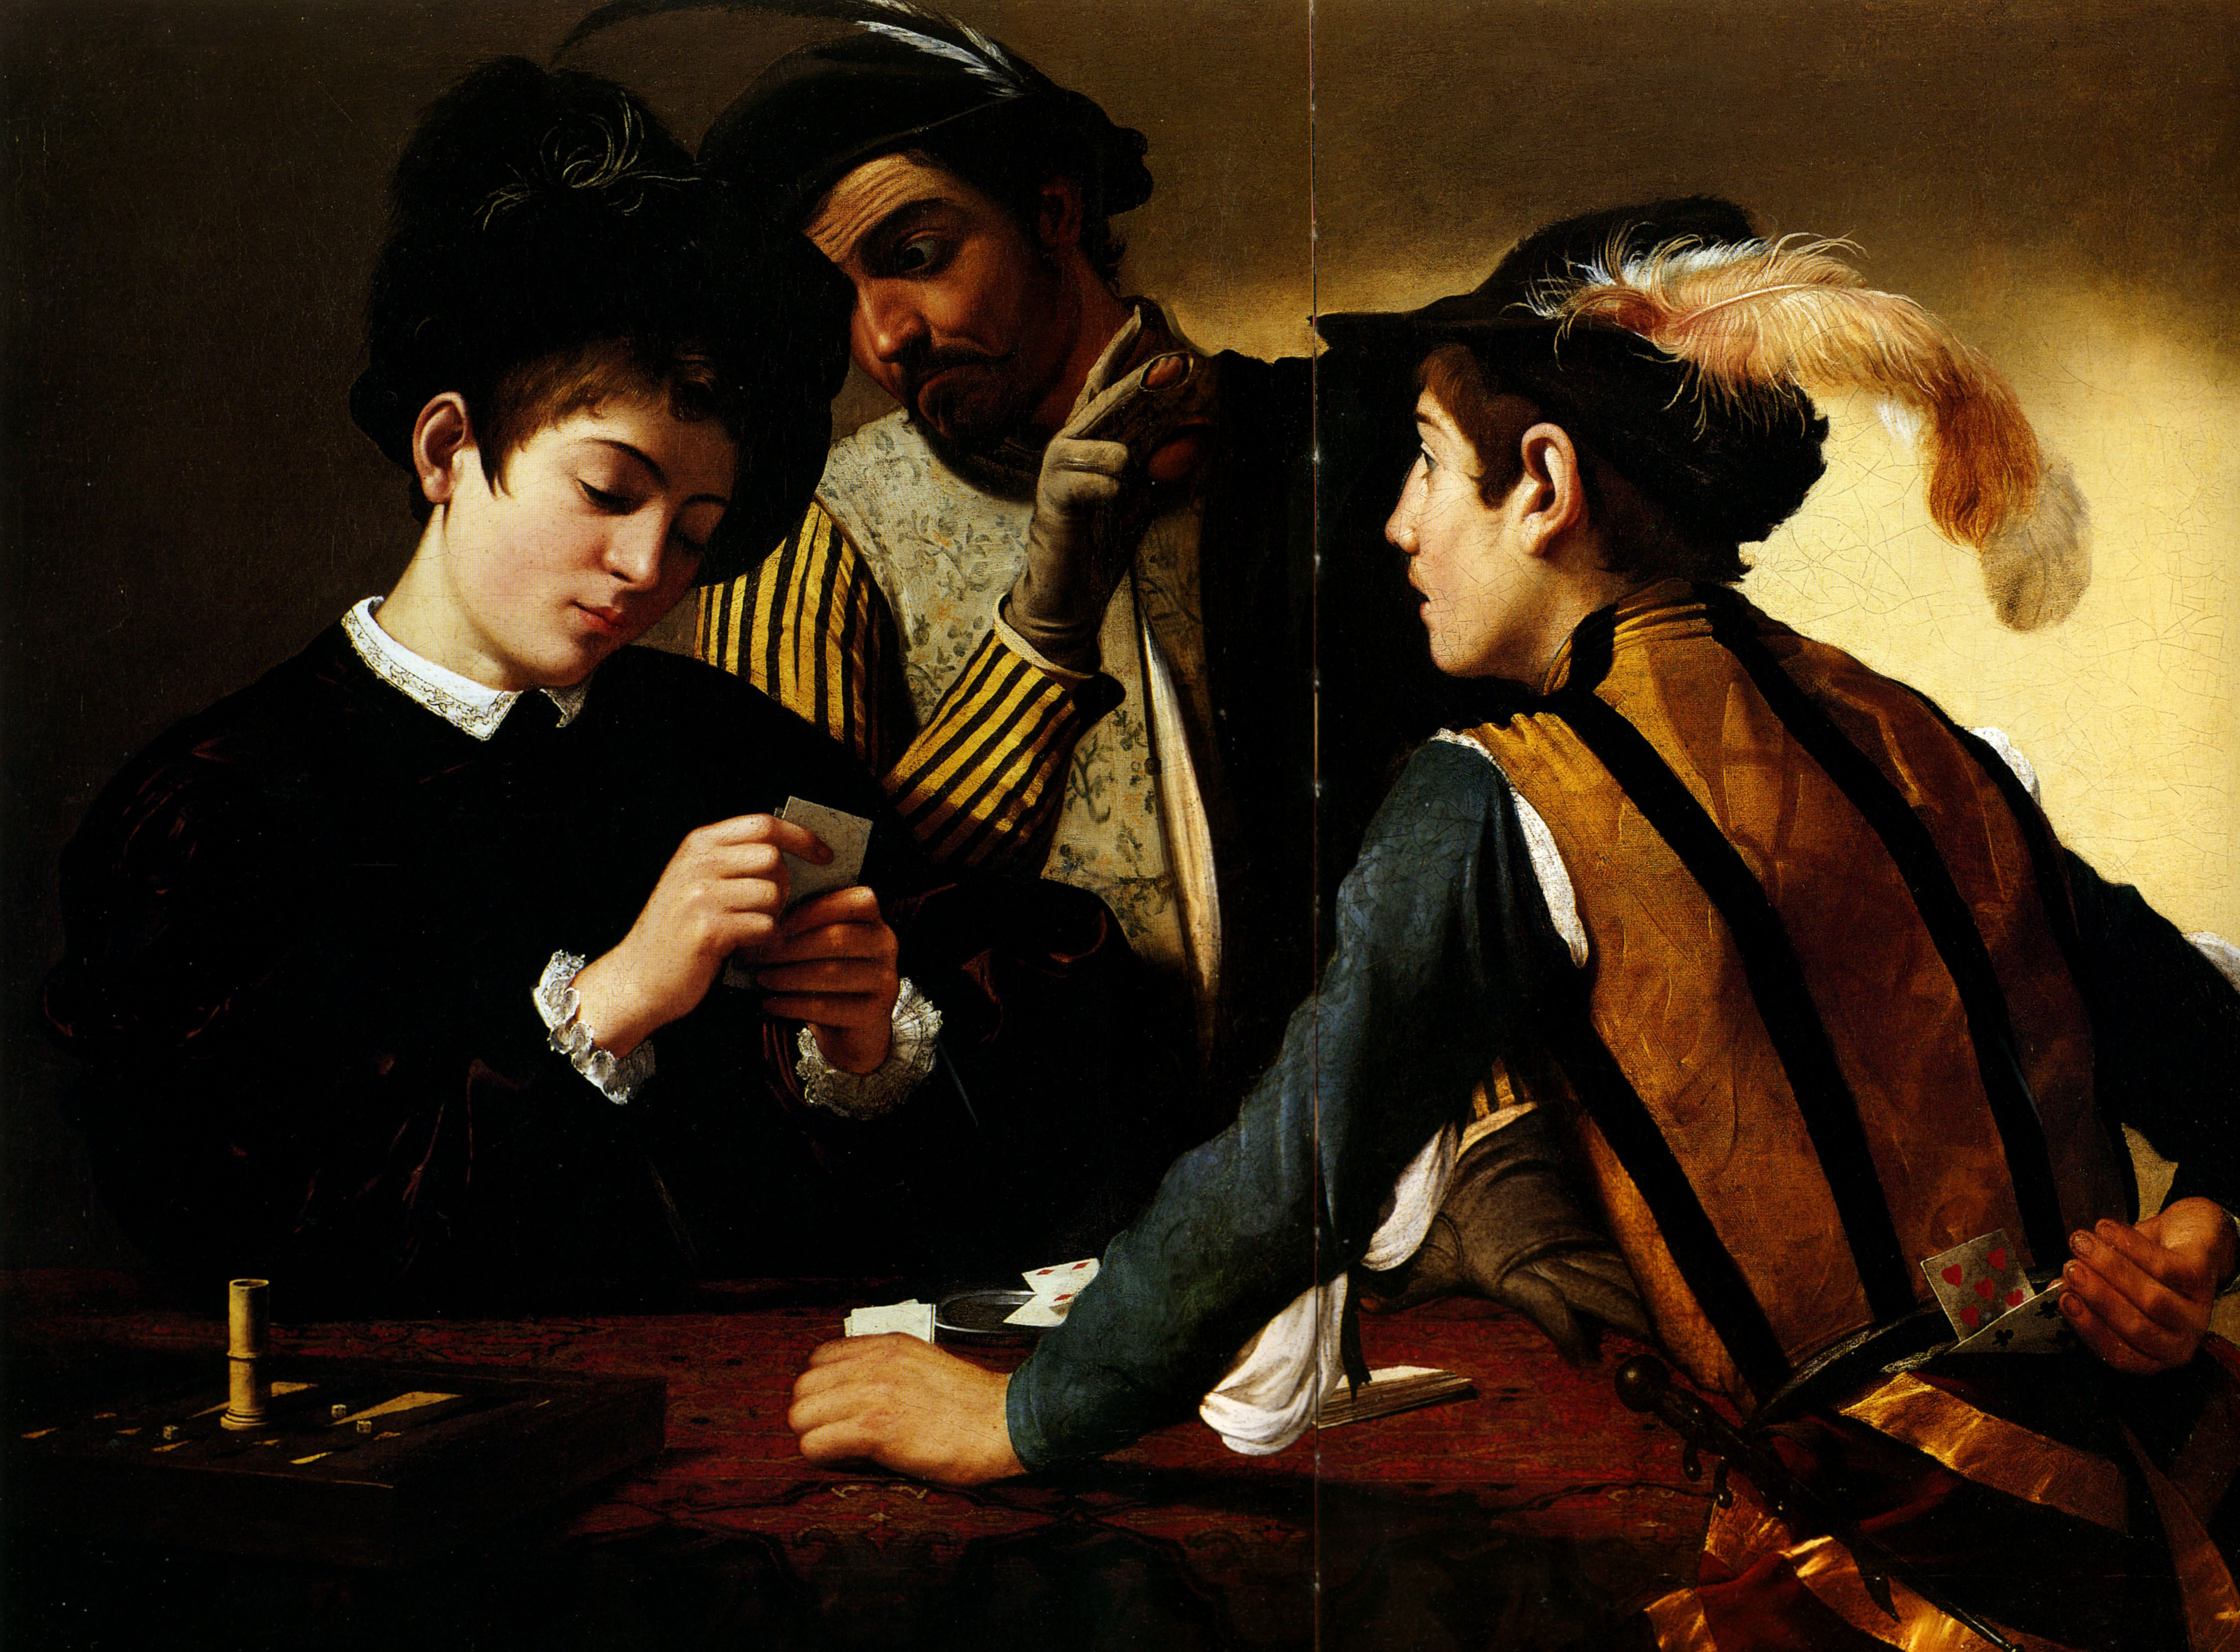 account of the life and works of michelangelo merisi da caravaggio Gives a more accurate and scholarly account of caravaggio's history michelangelo merisi da caravaggio but from that life sprung works of genius.